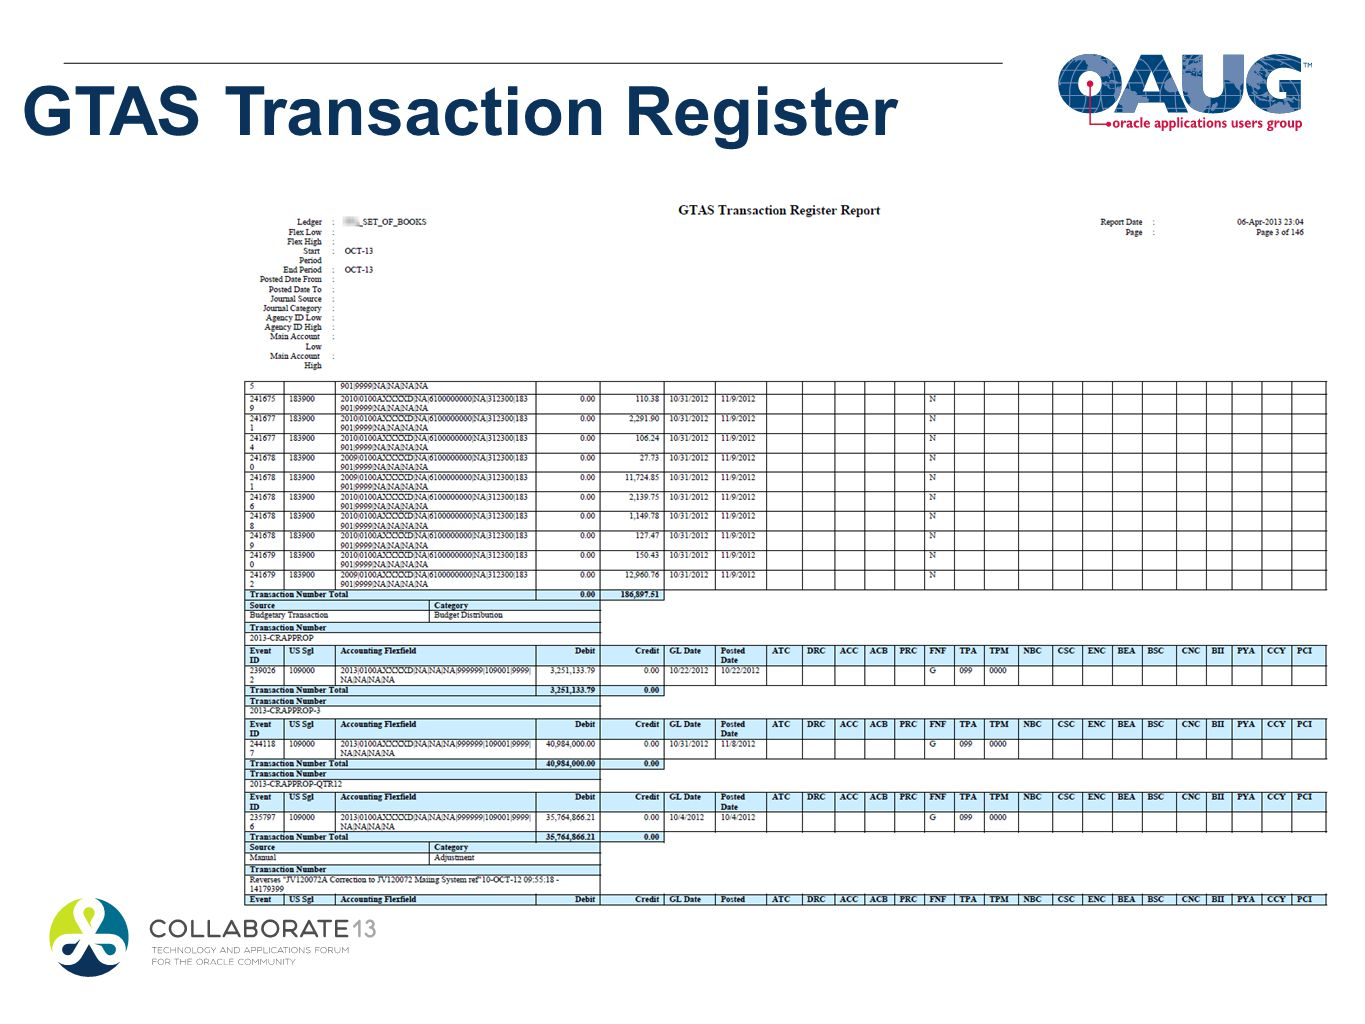 GTAS Transaction Register